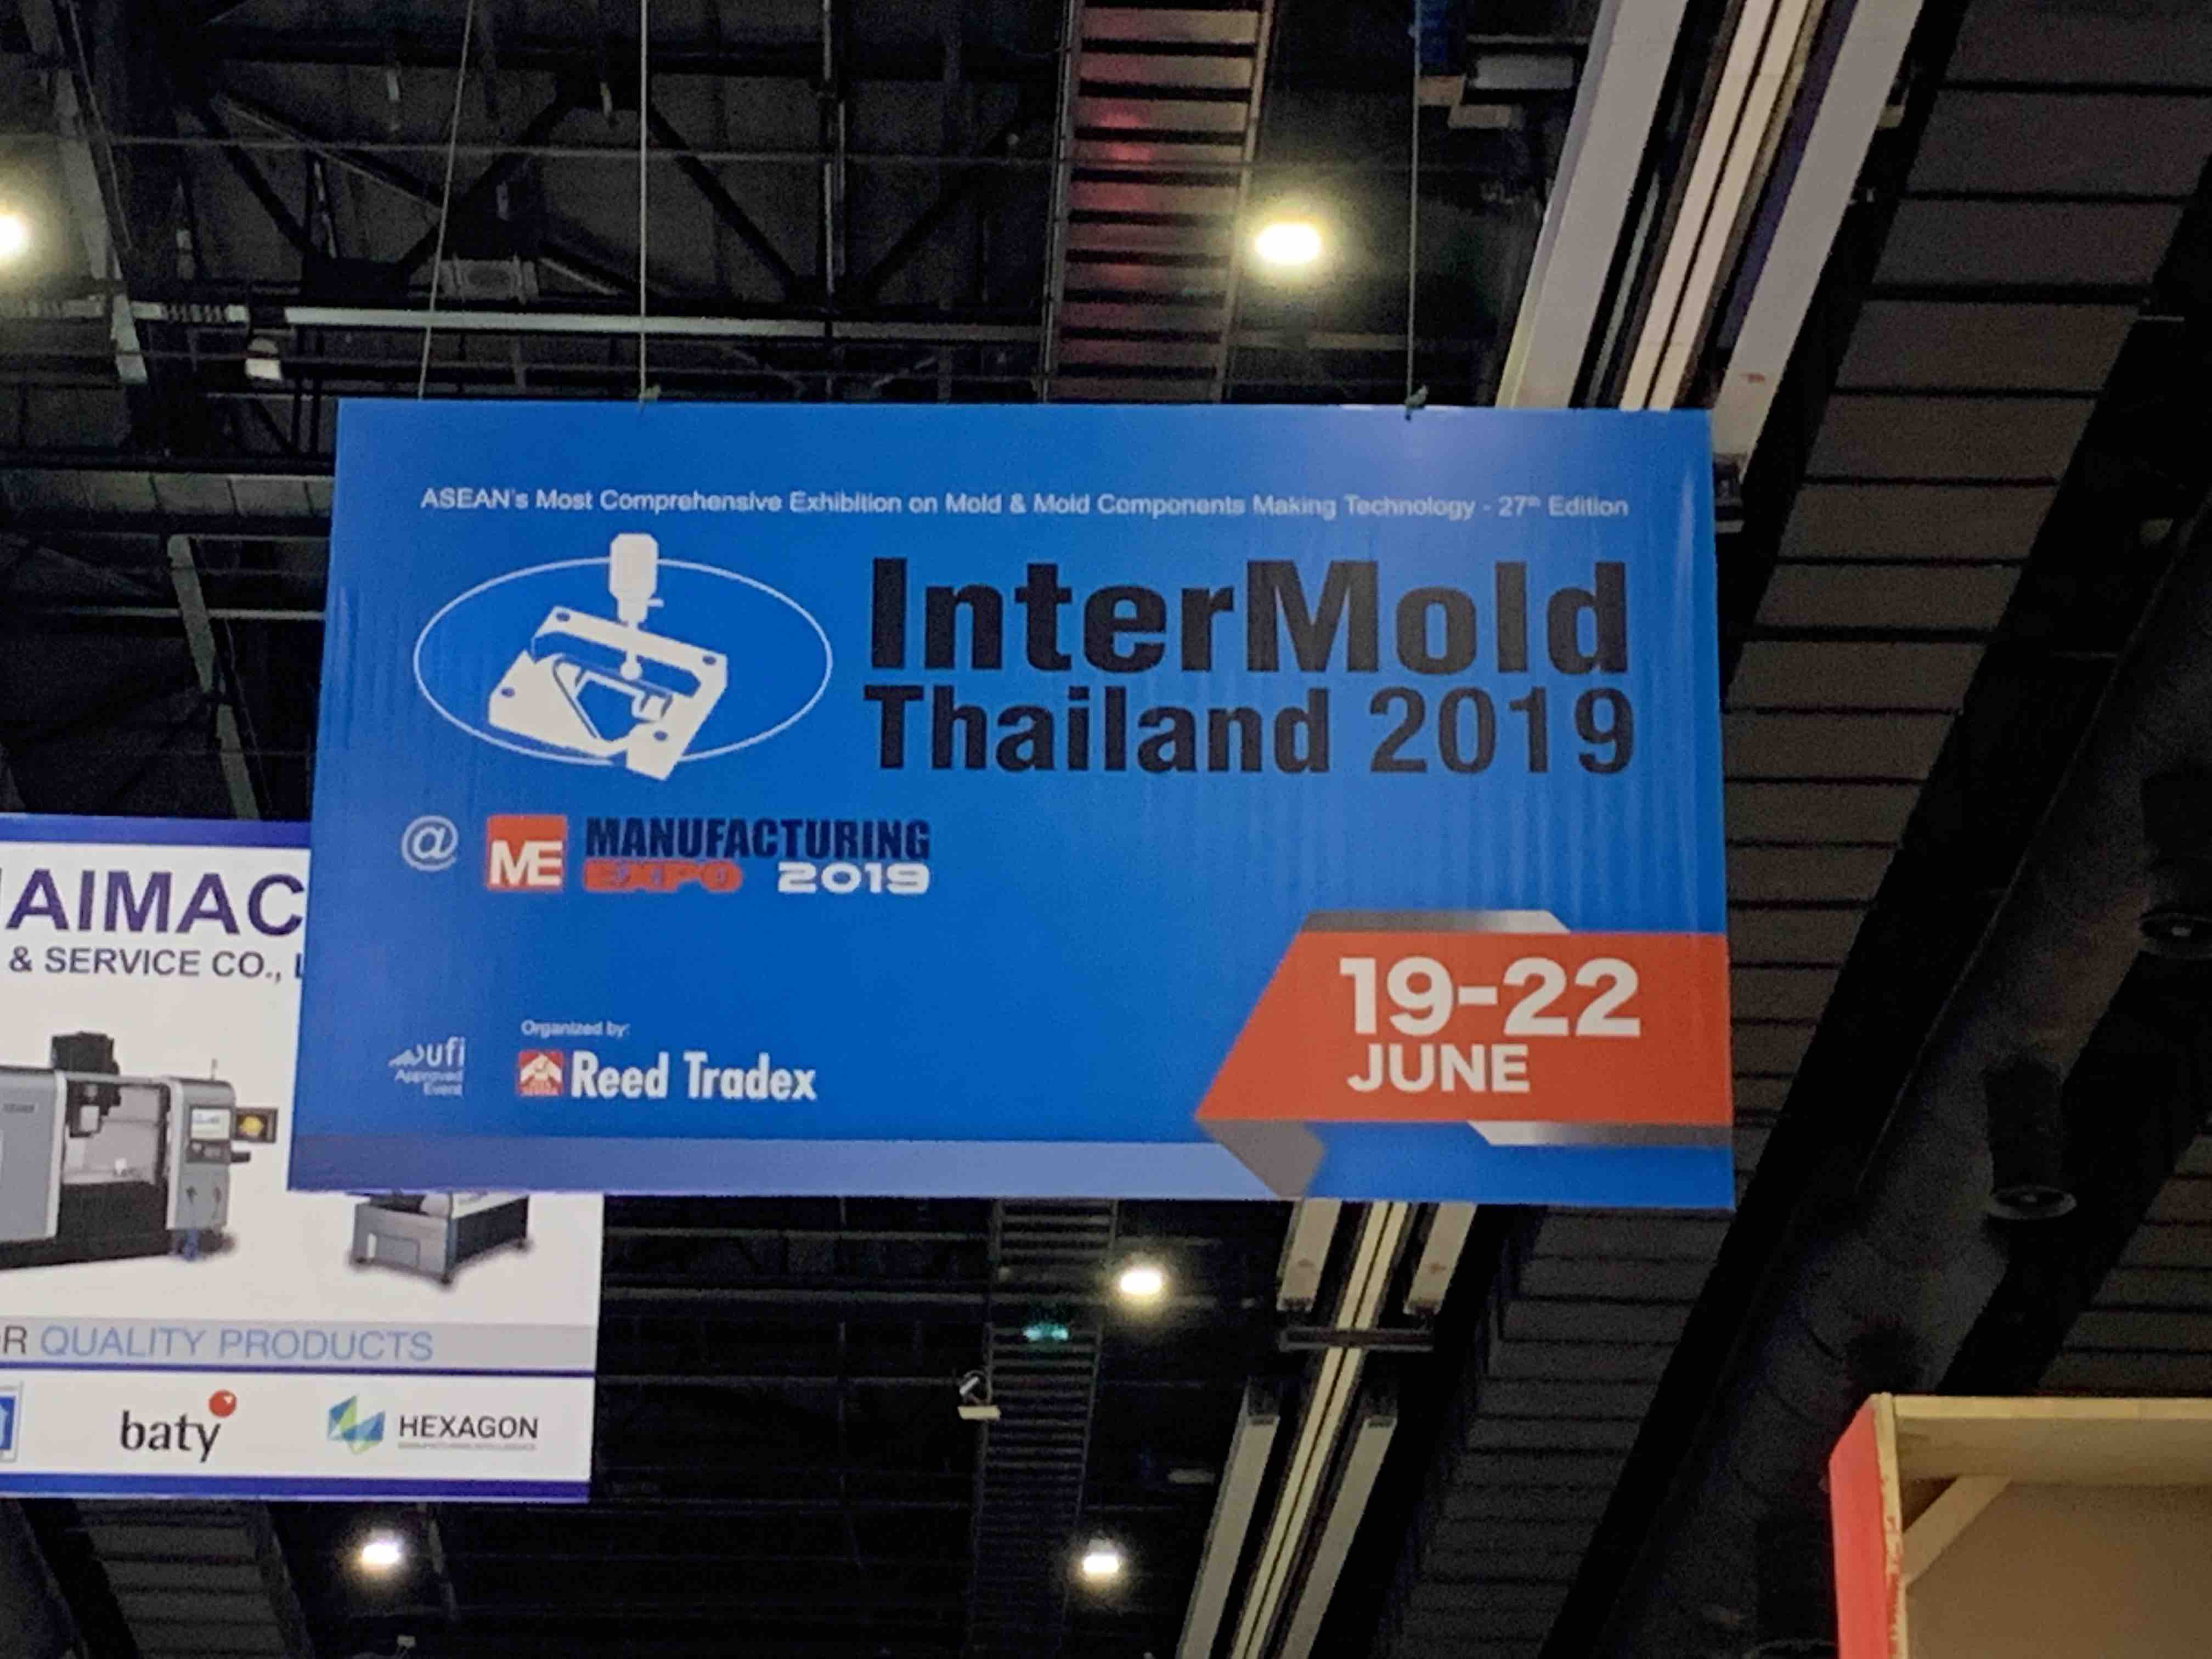 MANUFACTURING EXPO 2019 in THAILAND